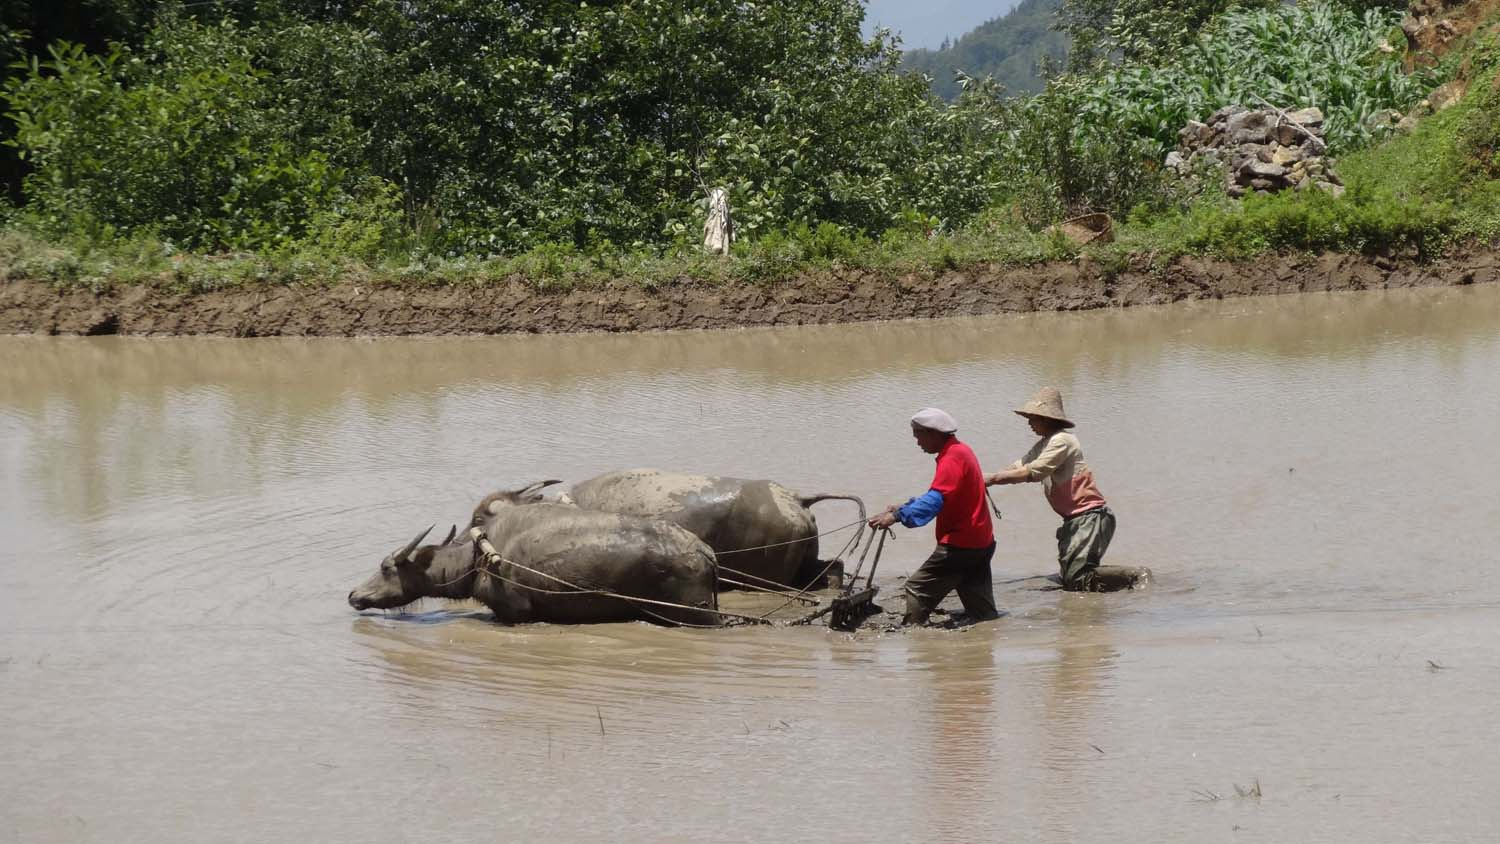 plowing is still done with the help of water buffaloes